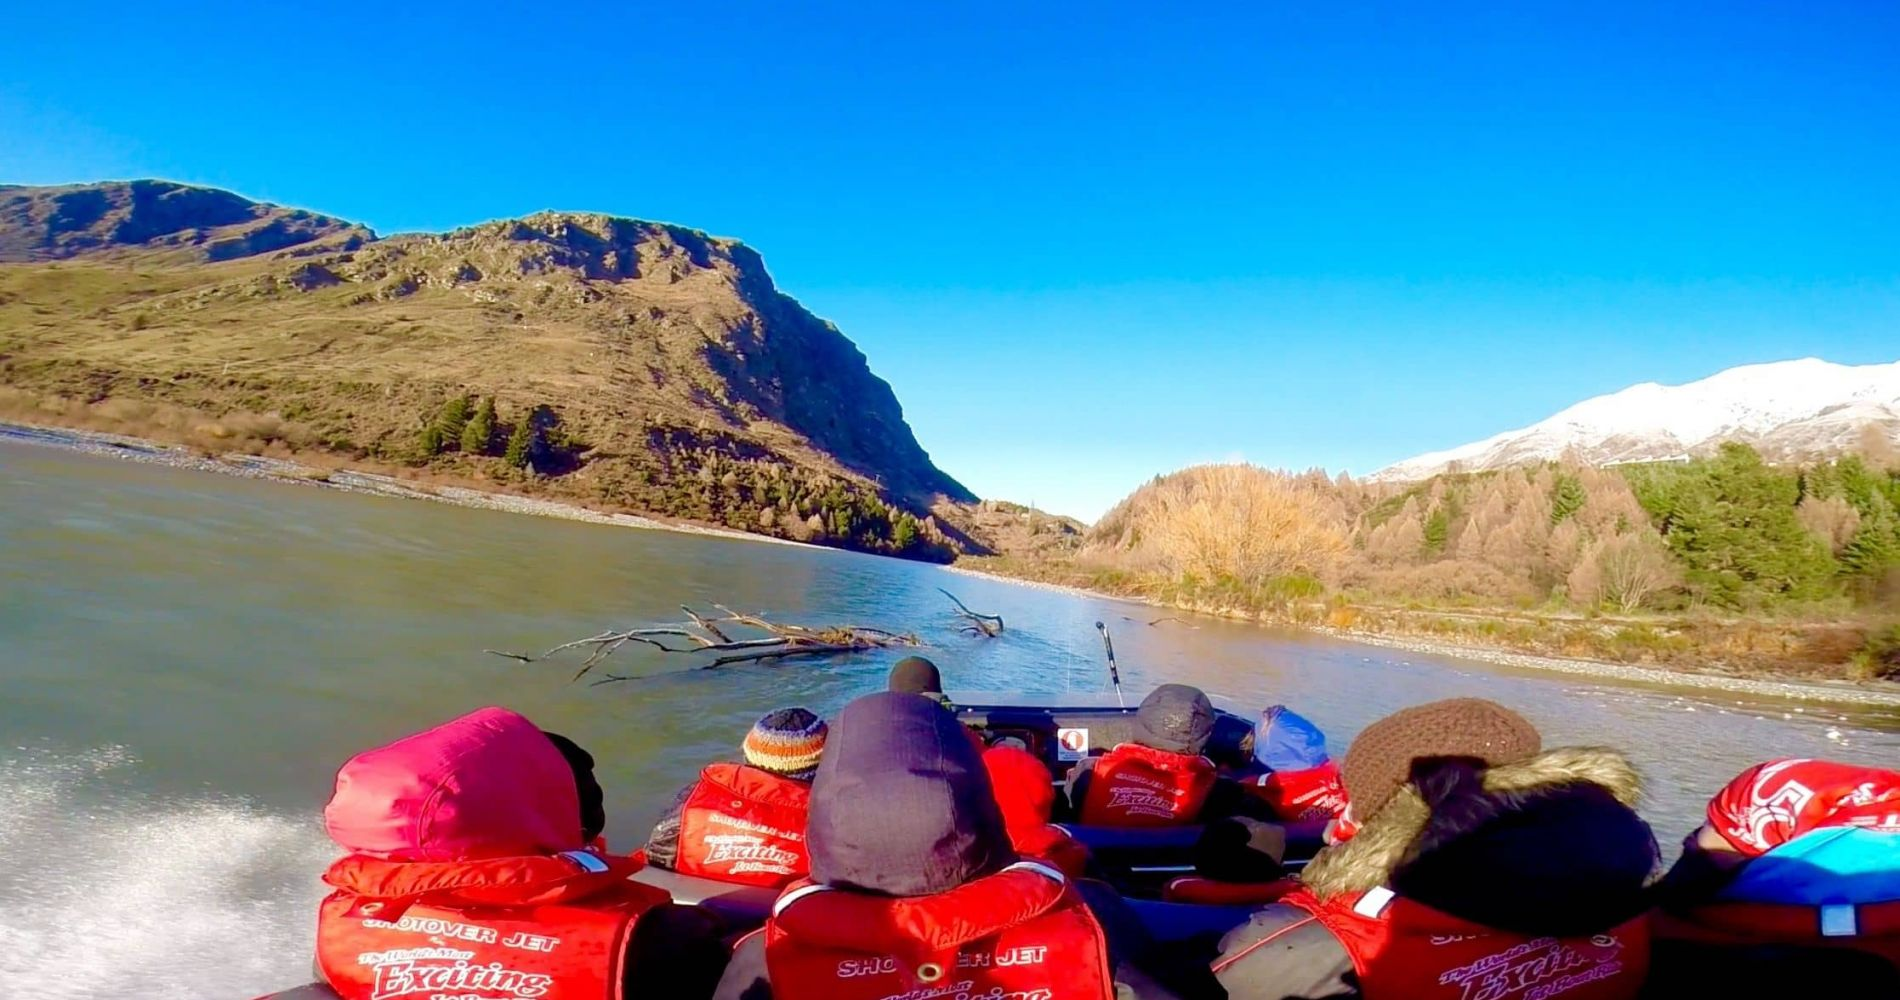 Jet Boat Experience on Shotover River, Queenstown in New Zealand